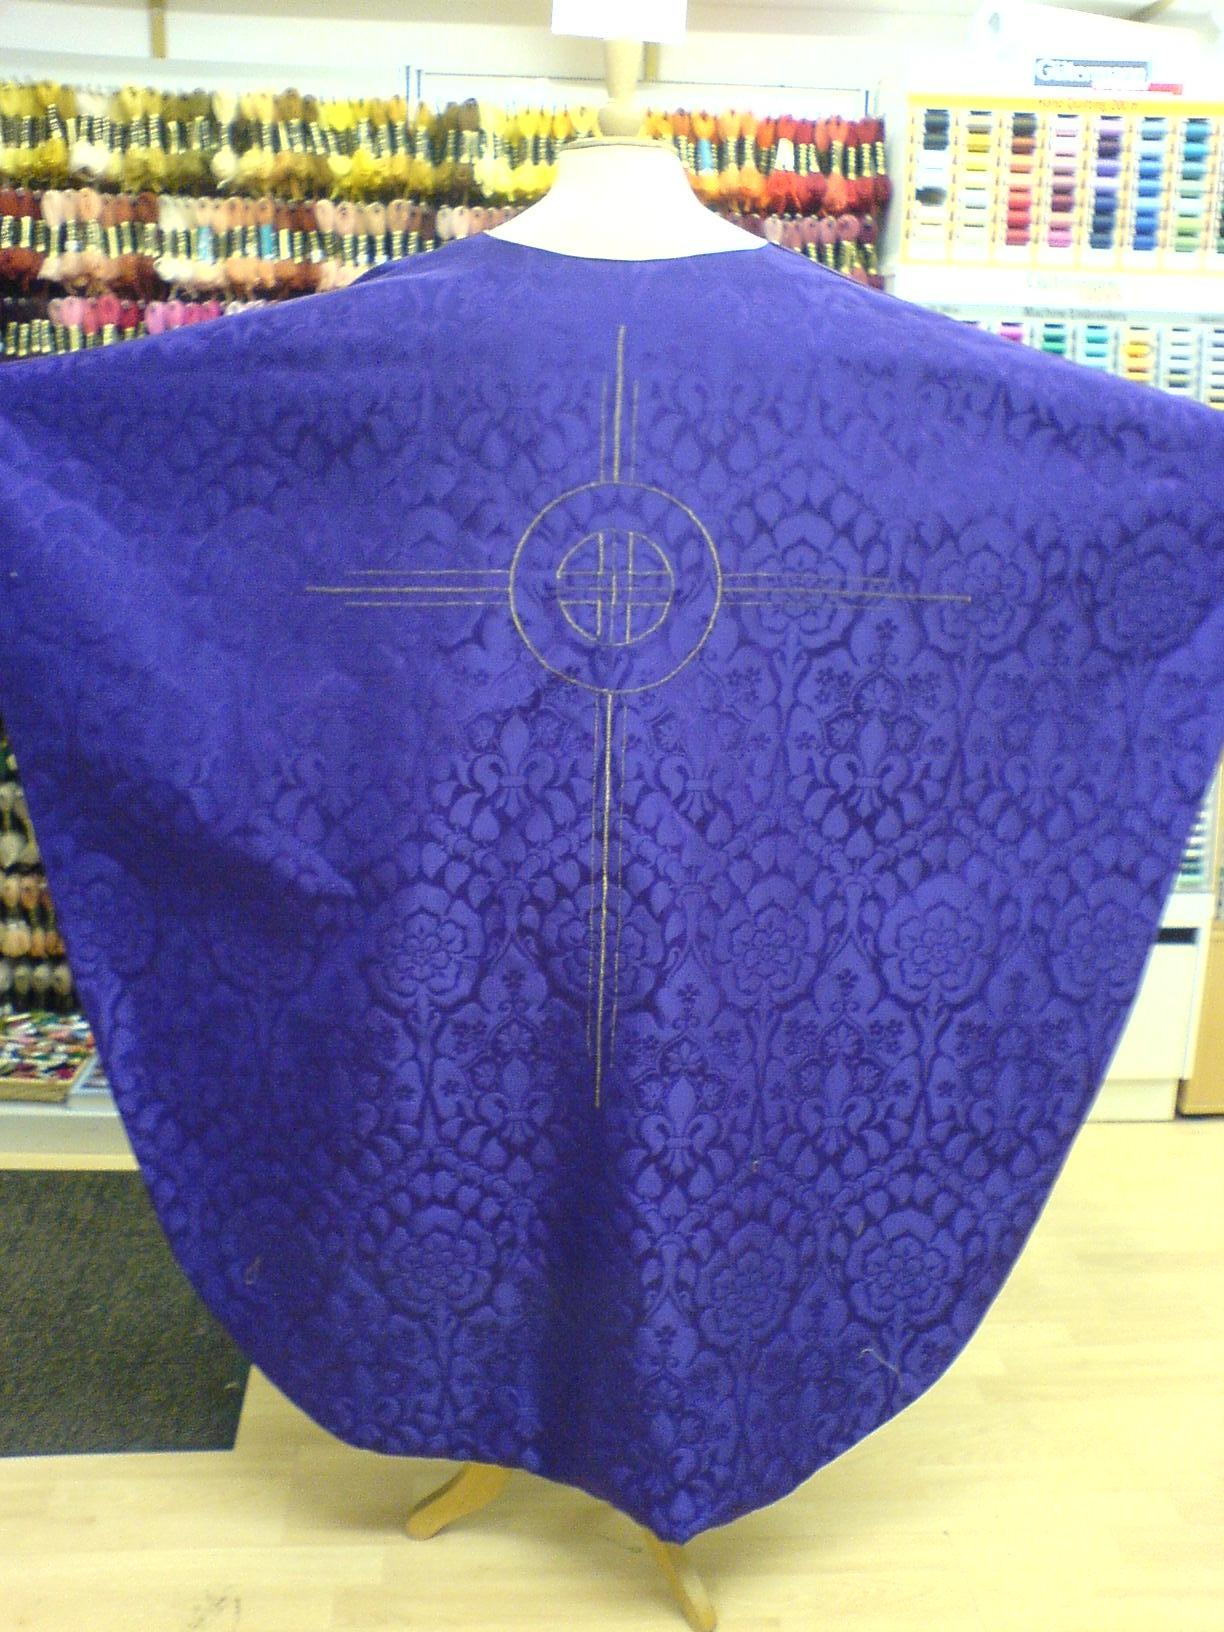 The Sewing Shop's Chasuble Commission